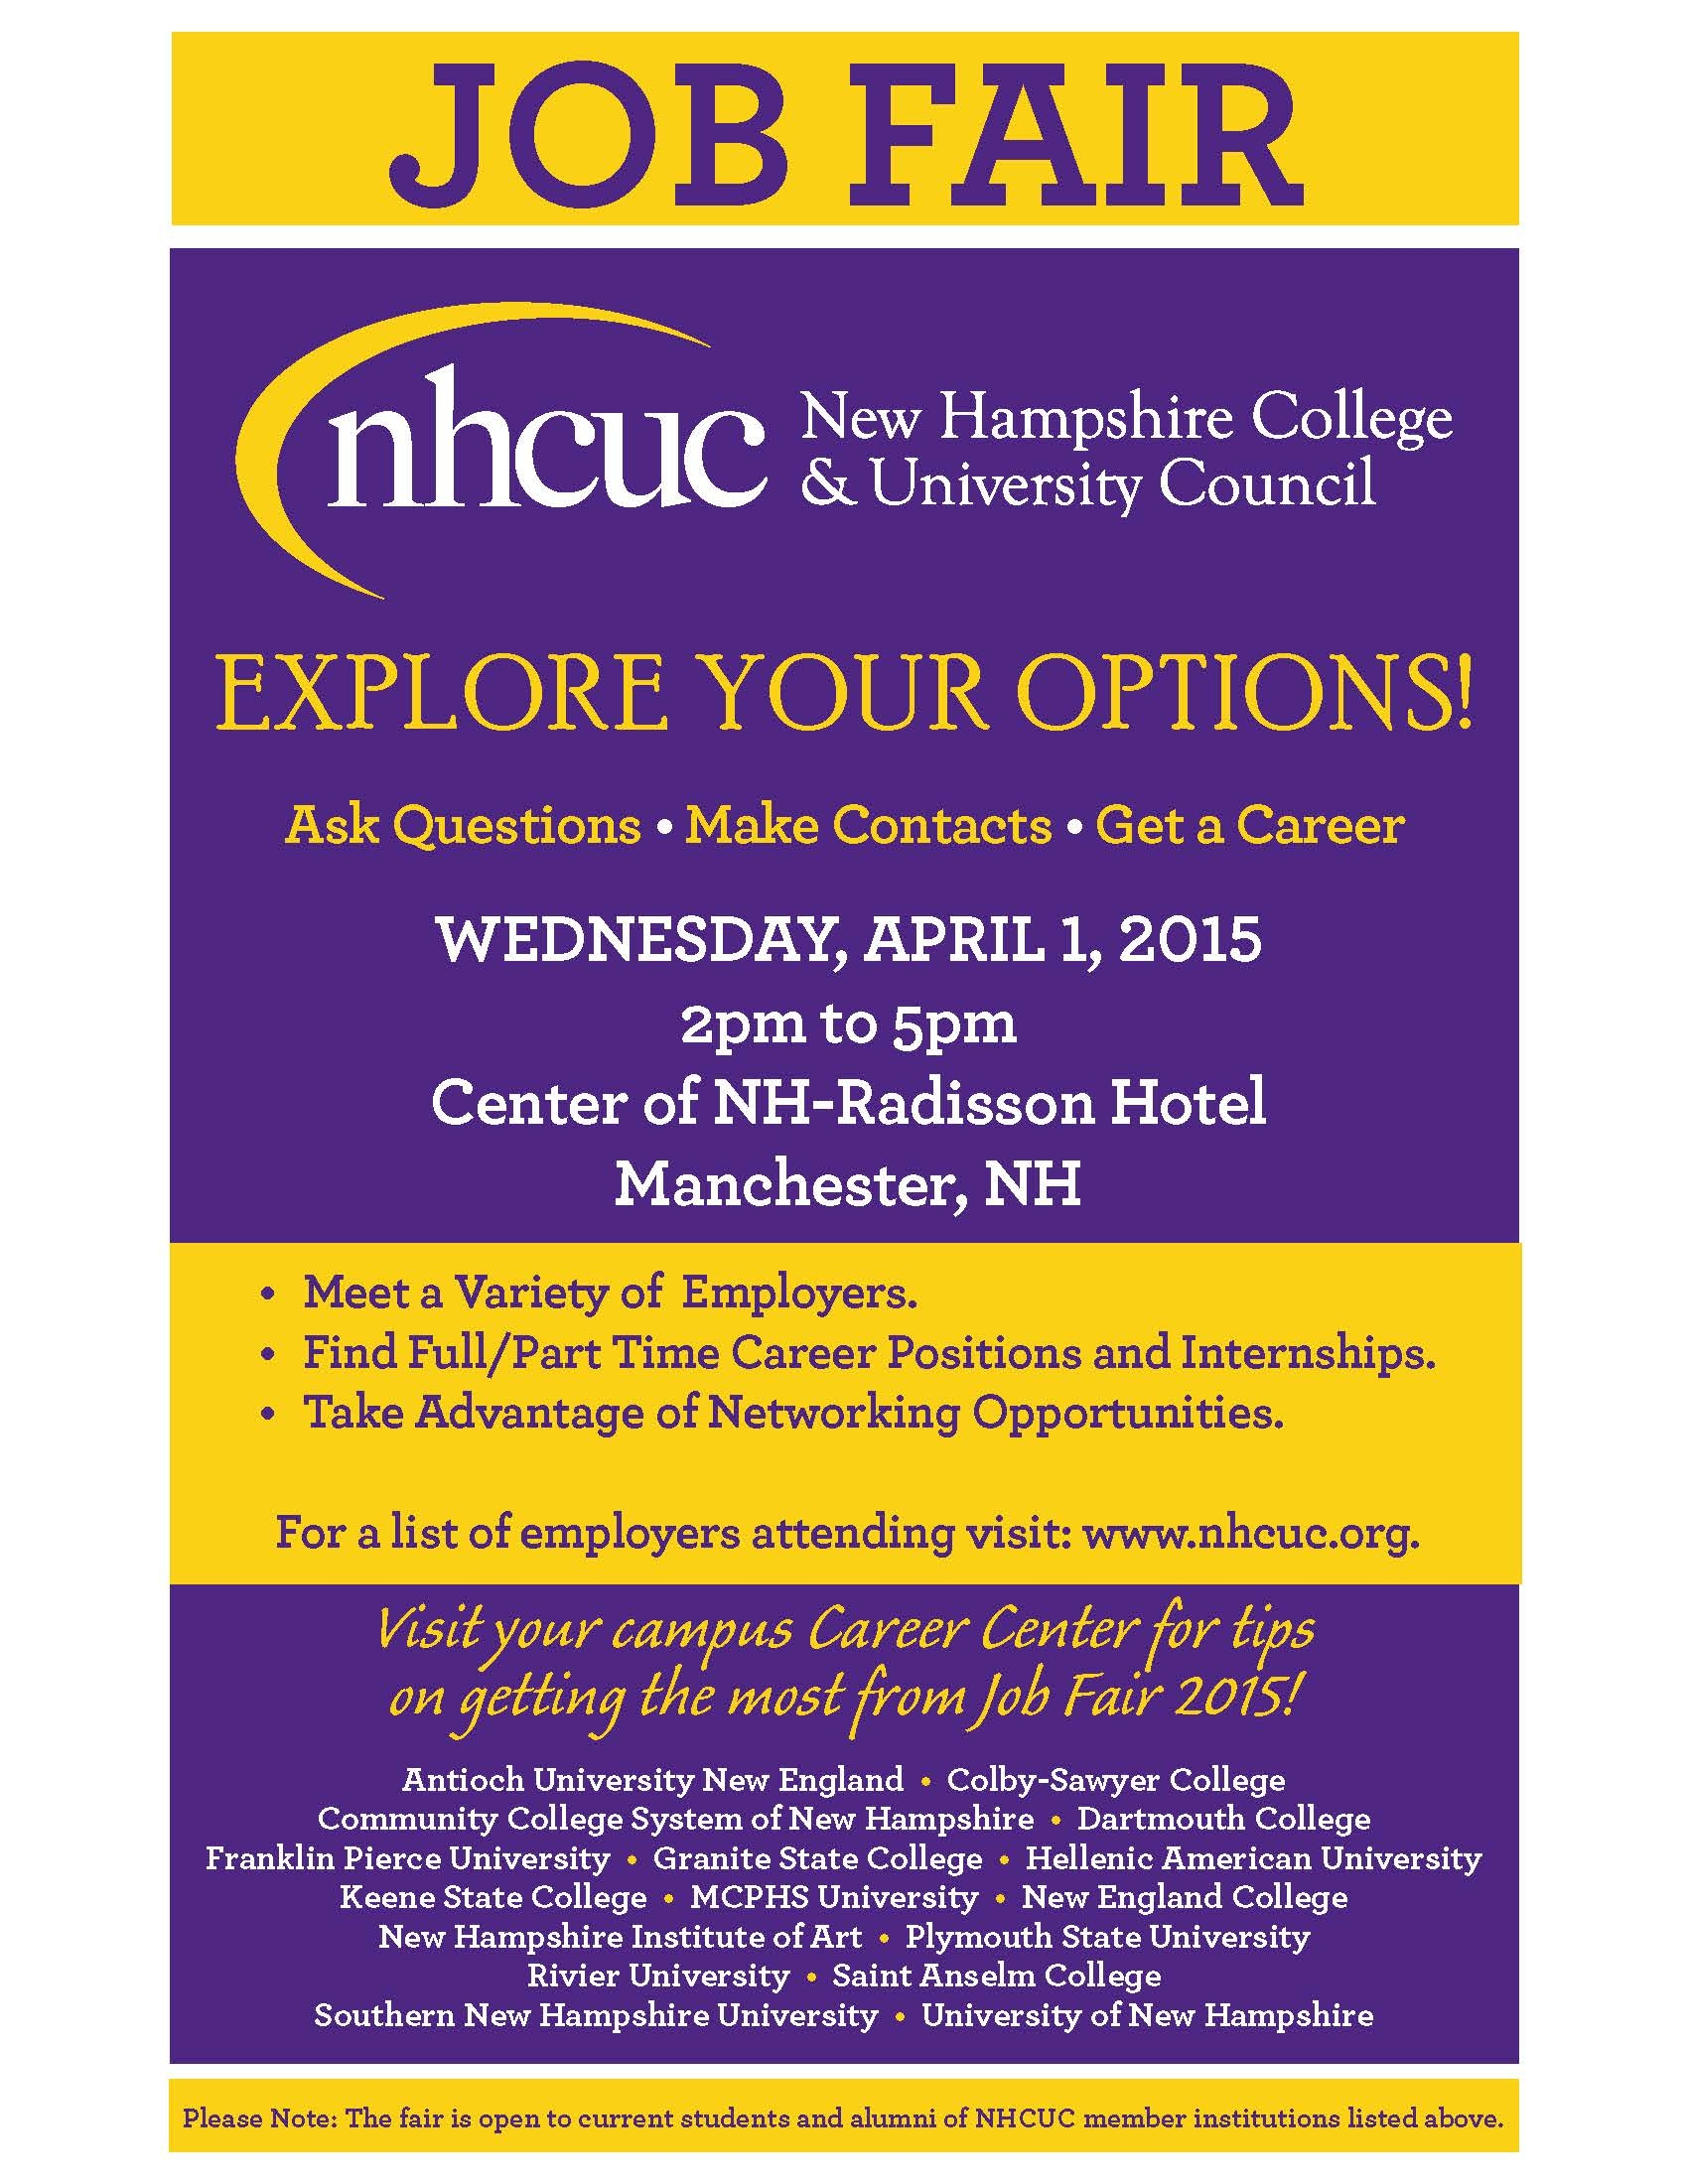 nhcuc job fair eraven job fair tips resources